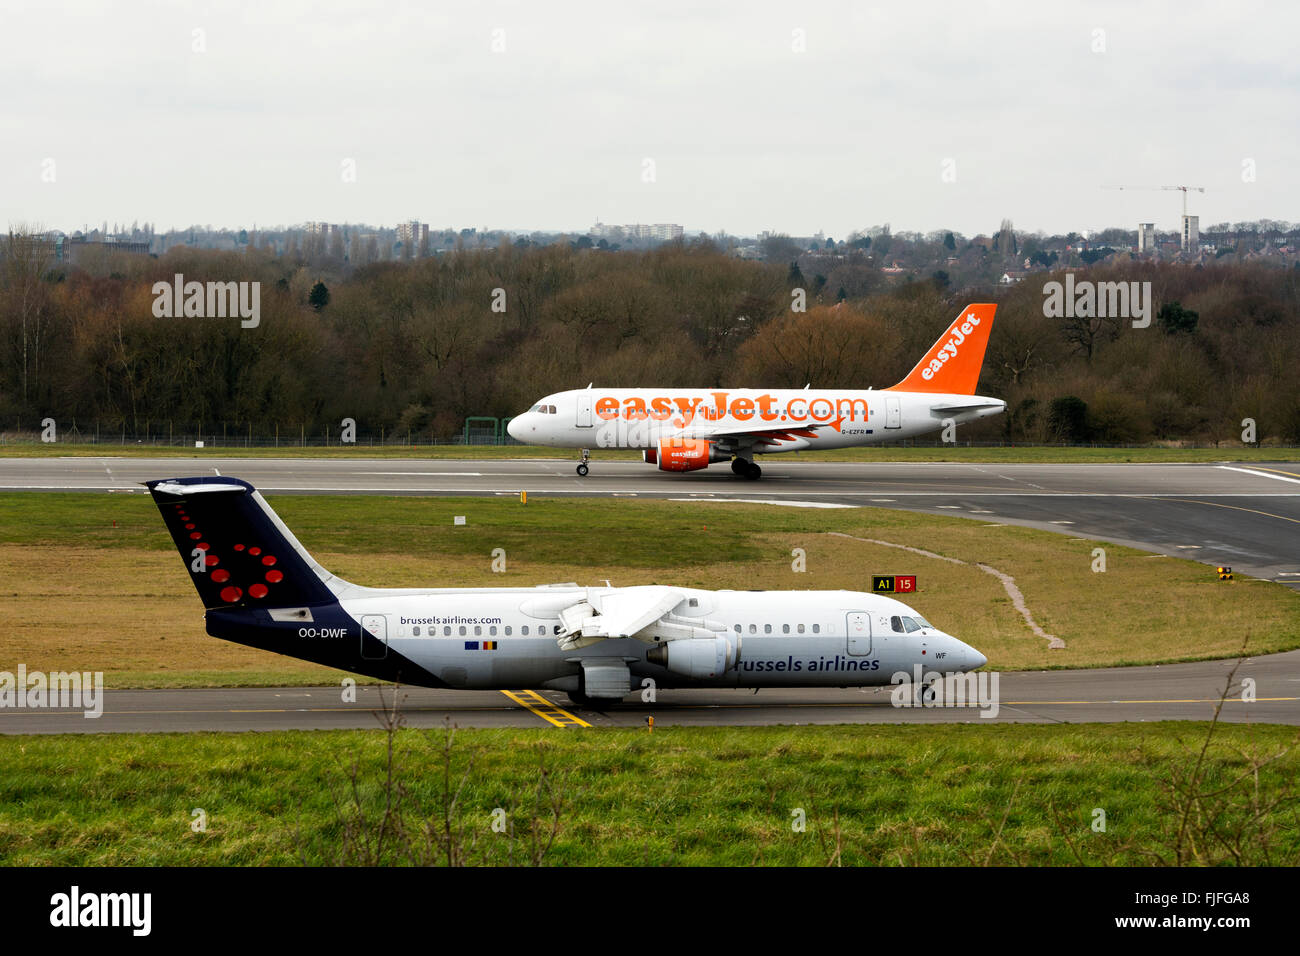 Brussels Airlines and Easyjet aircraft about to take off at Birmingham Airport, UK - Stock Image